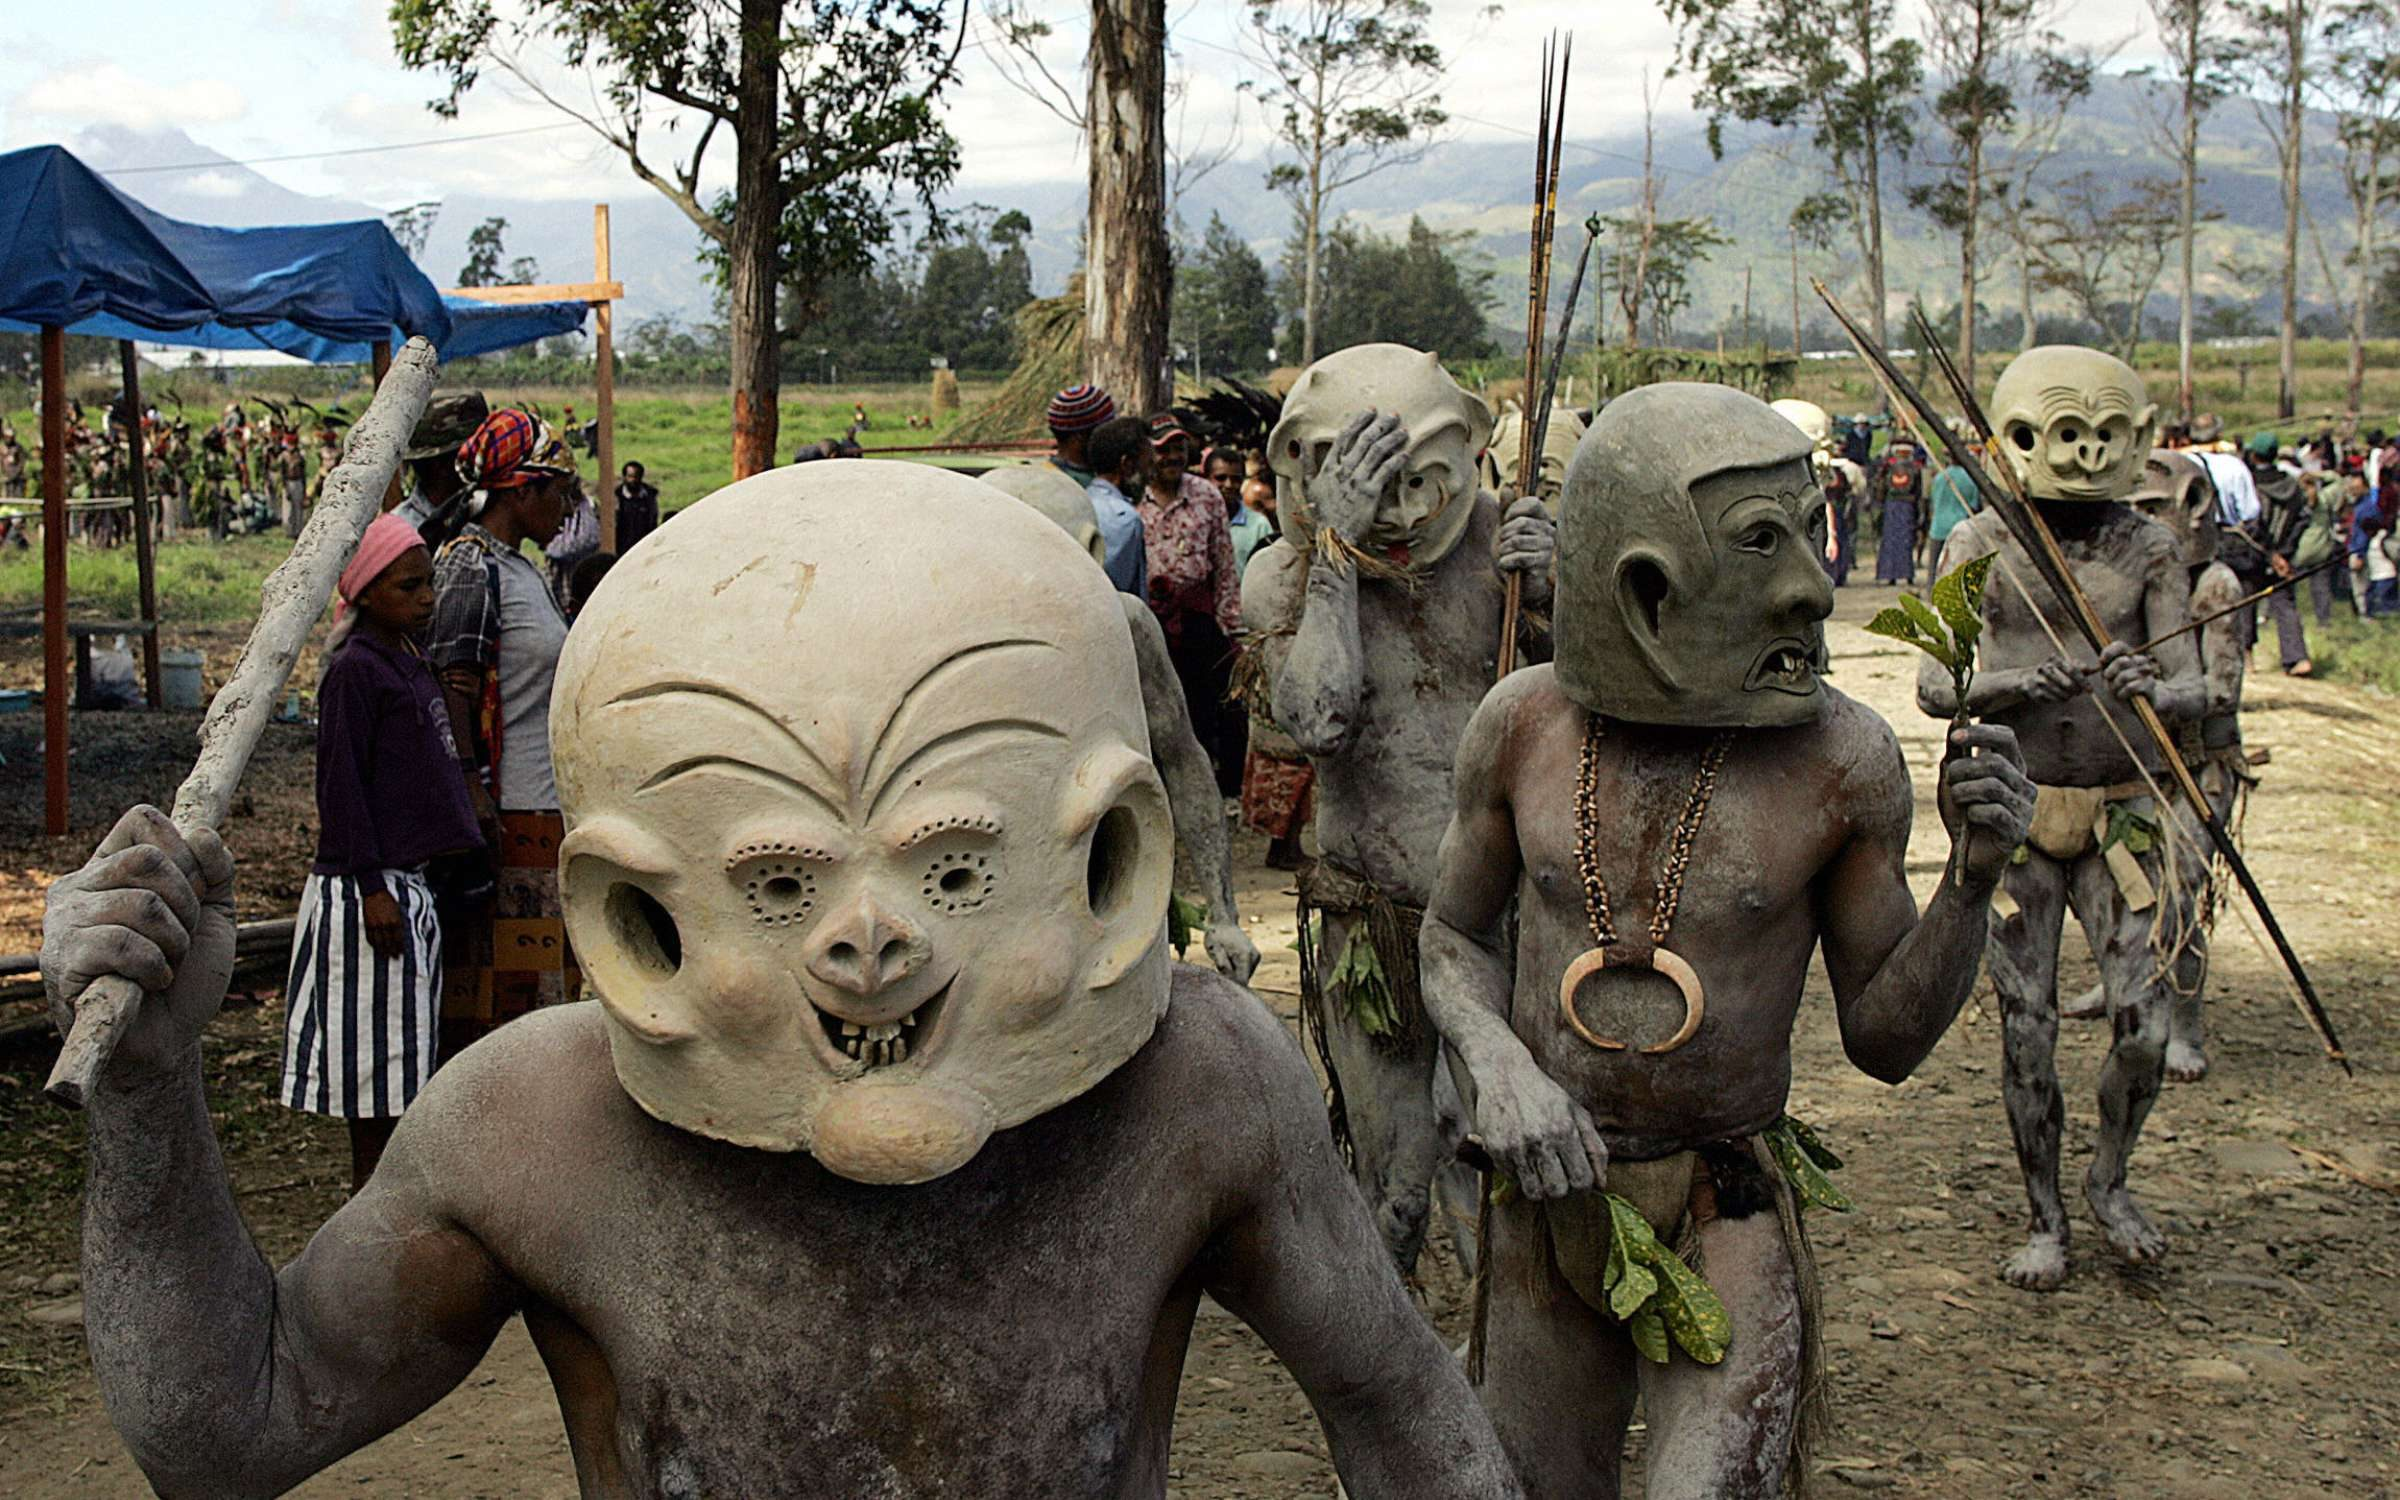 Asaro mud men from Goroka walk to the annual sing-sing cultural festival in Mount Hagen in 2004. Over 70 tribes put aside their ethnic tensions to come together once a year in the remote frontier town to celebrate the cultural diversity of Papua New Guinea. Credit: TORSTEN BLACKWOOD/AFP via Getty Images